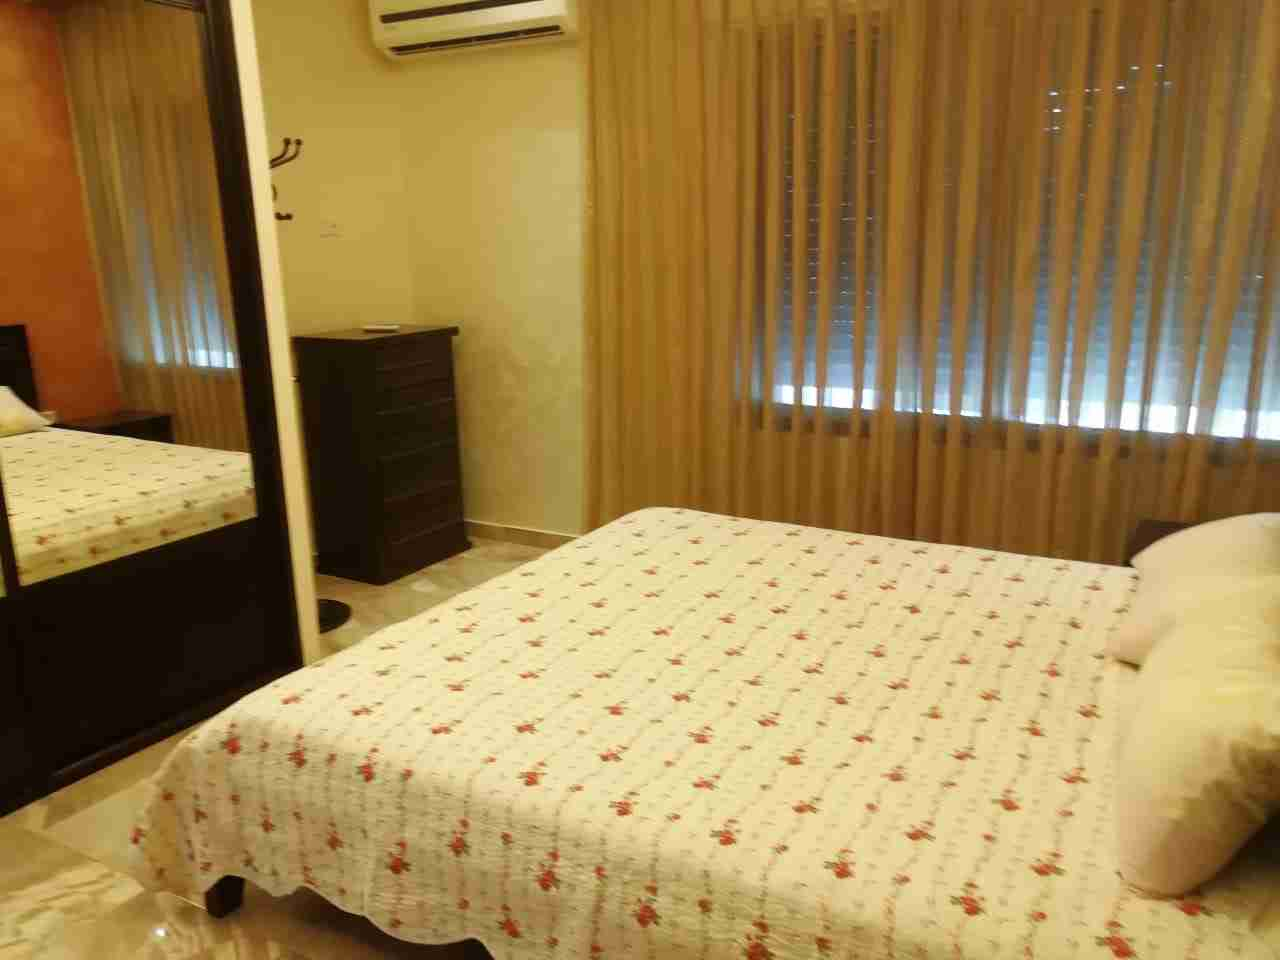 Fully furnished 1 bhk apartments available at prime location in al taawun sharjah monthly rent just 3200 AED-  شقة مميزة جدا للايجار...